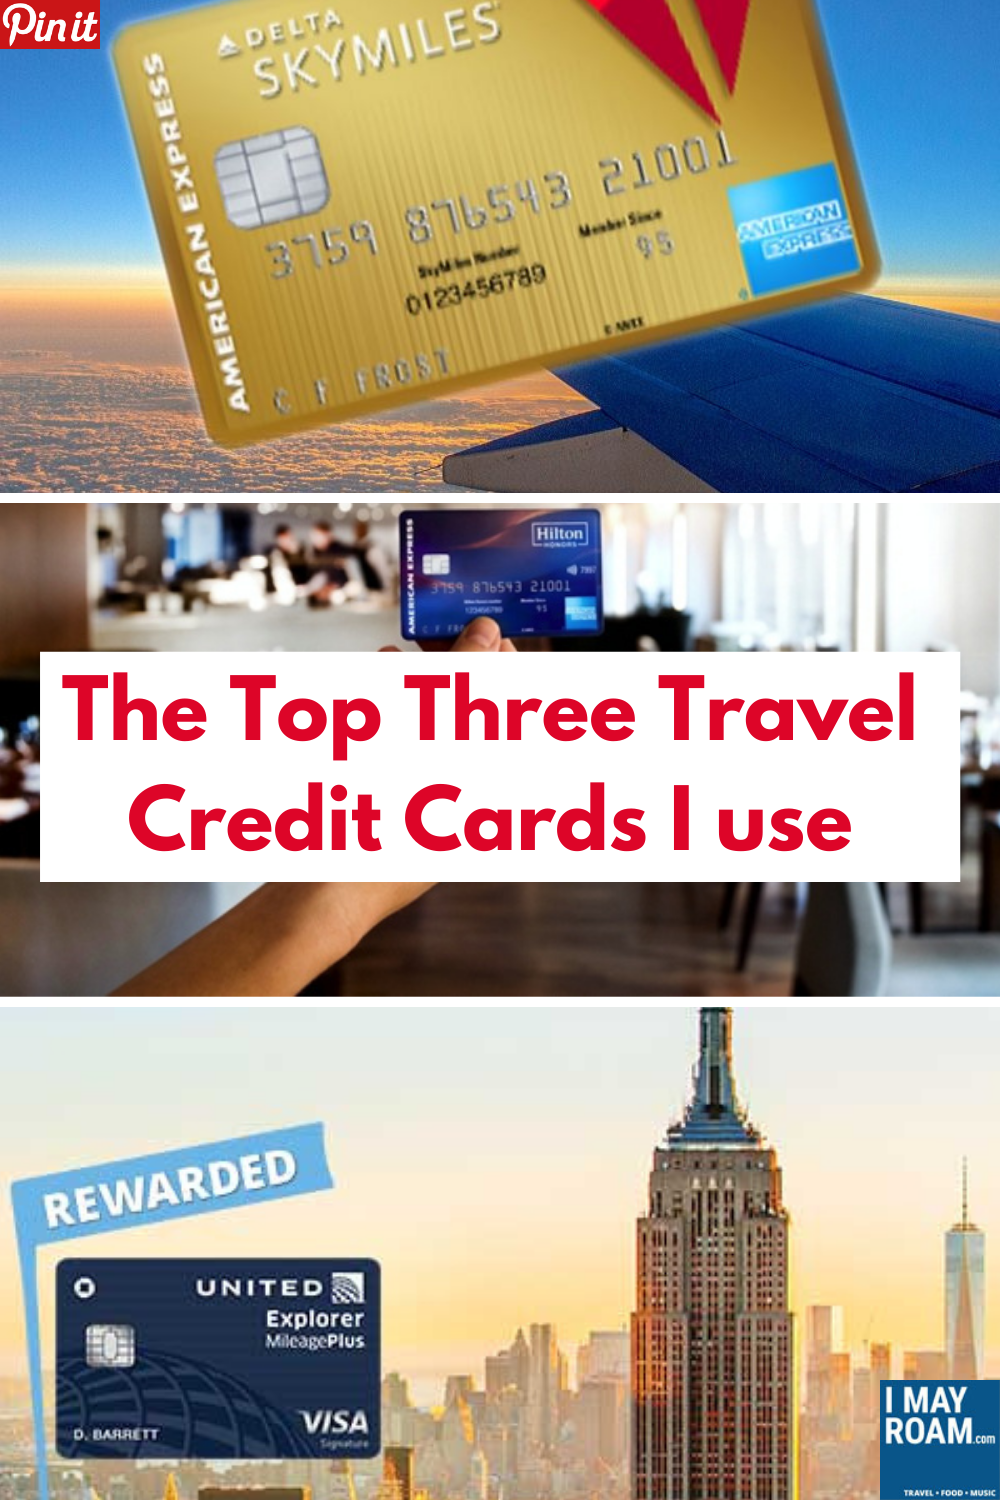 Pinterest The top three travel credit cards I use